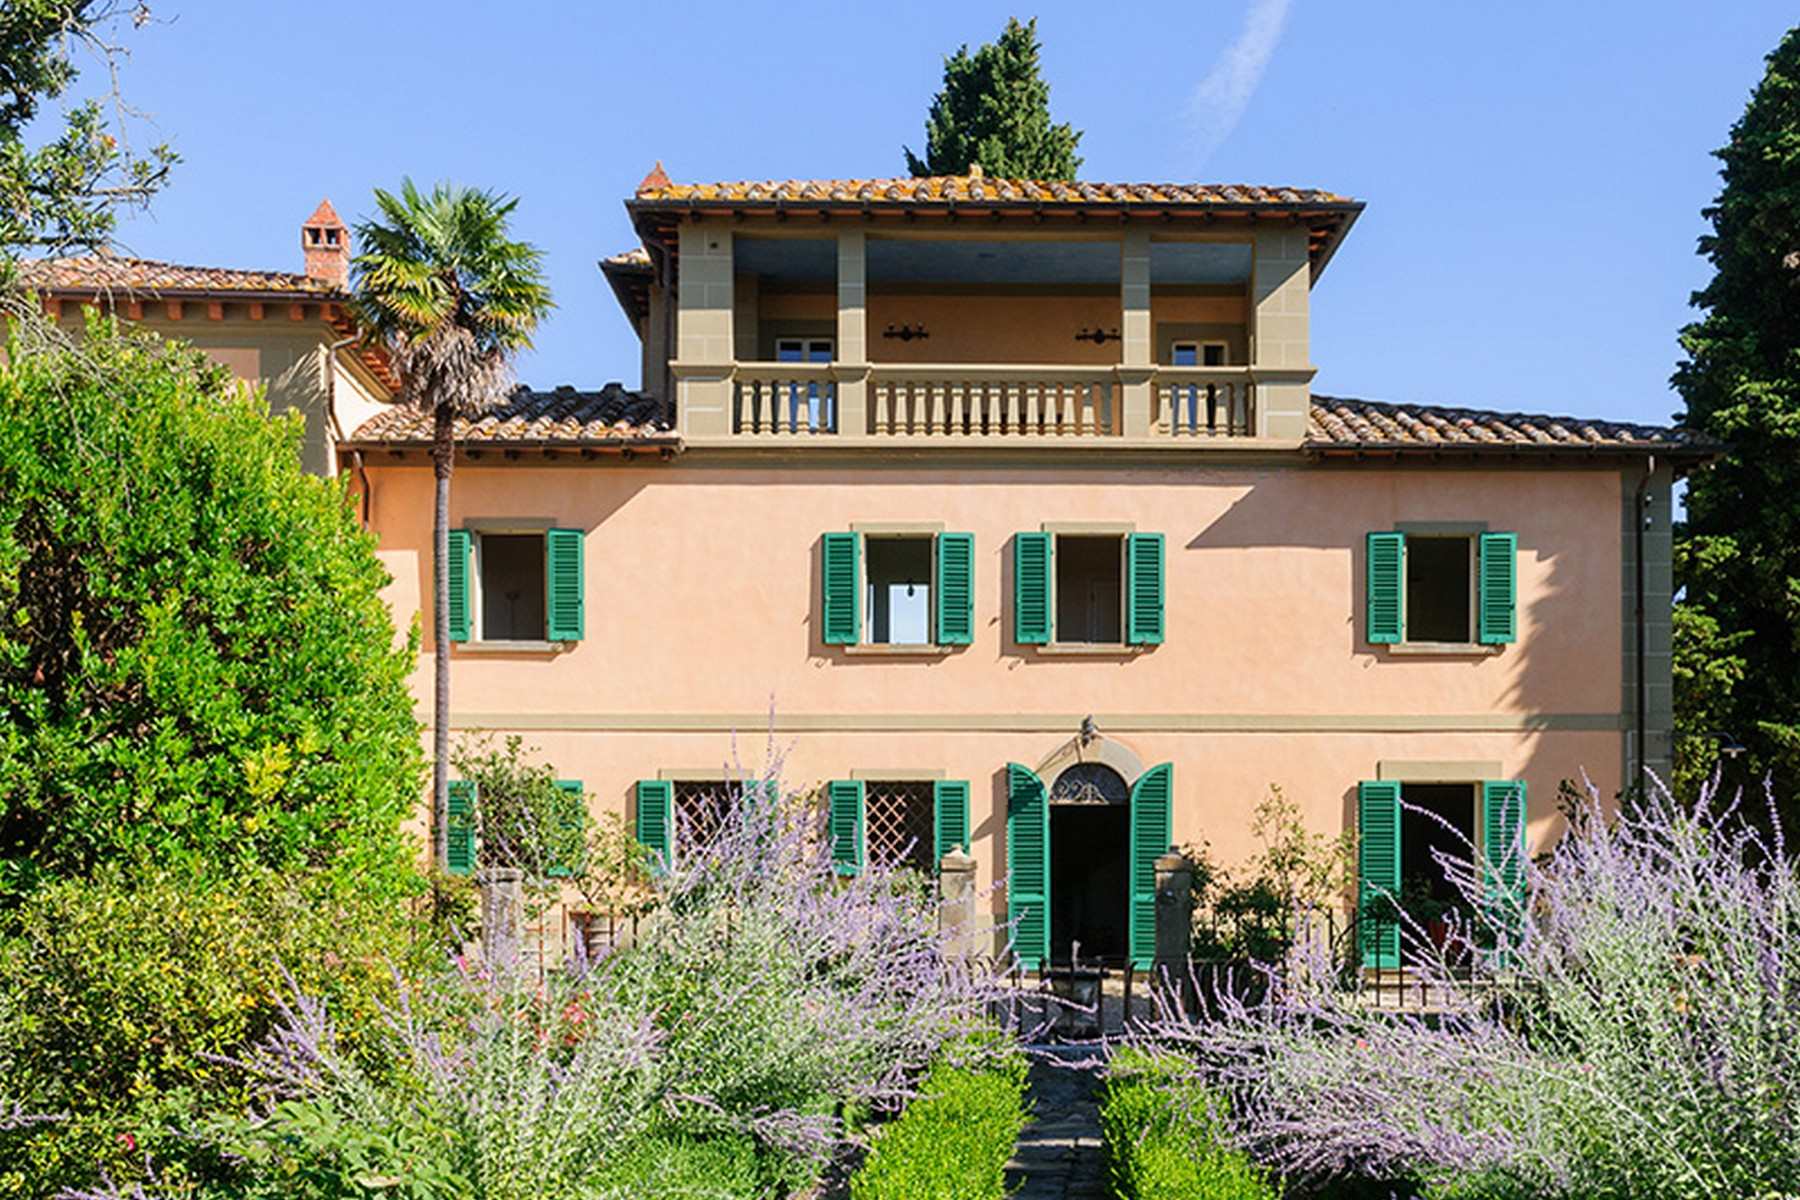 Single Family Home for Sale at Splendid villa between Siena and Arezzo Monte San Savino Arezzo, 52048 Italy